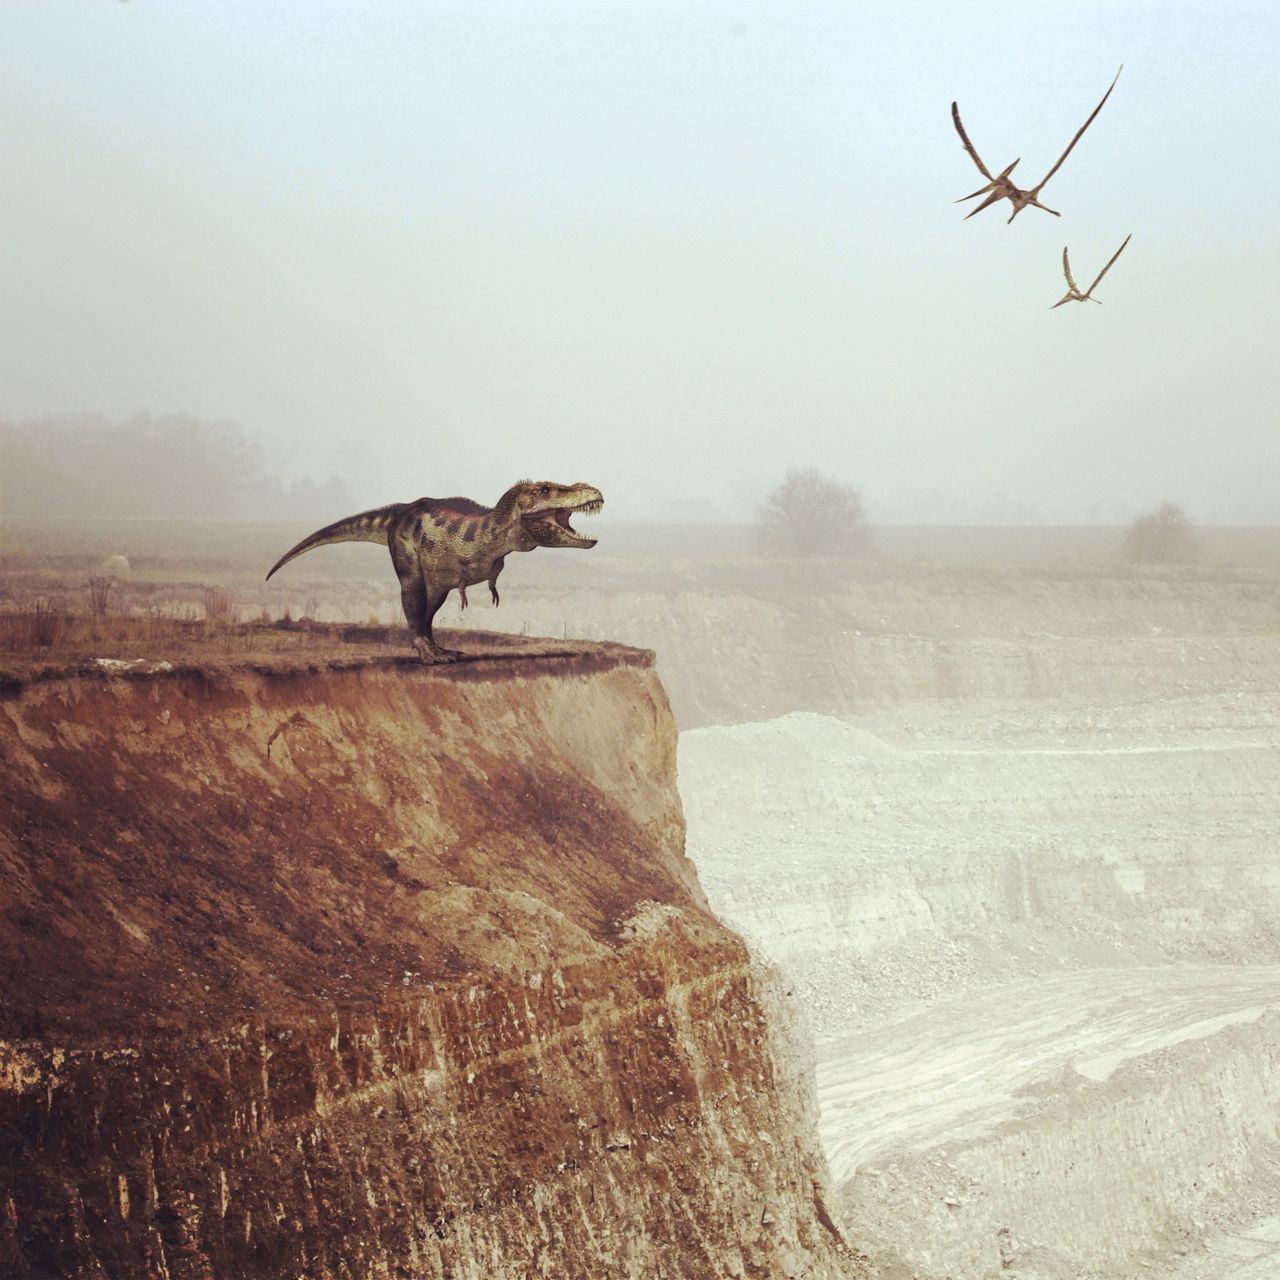 Digital composite of dinosaur and birds over rocky landscape